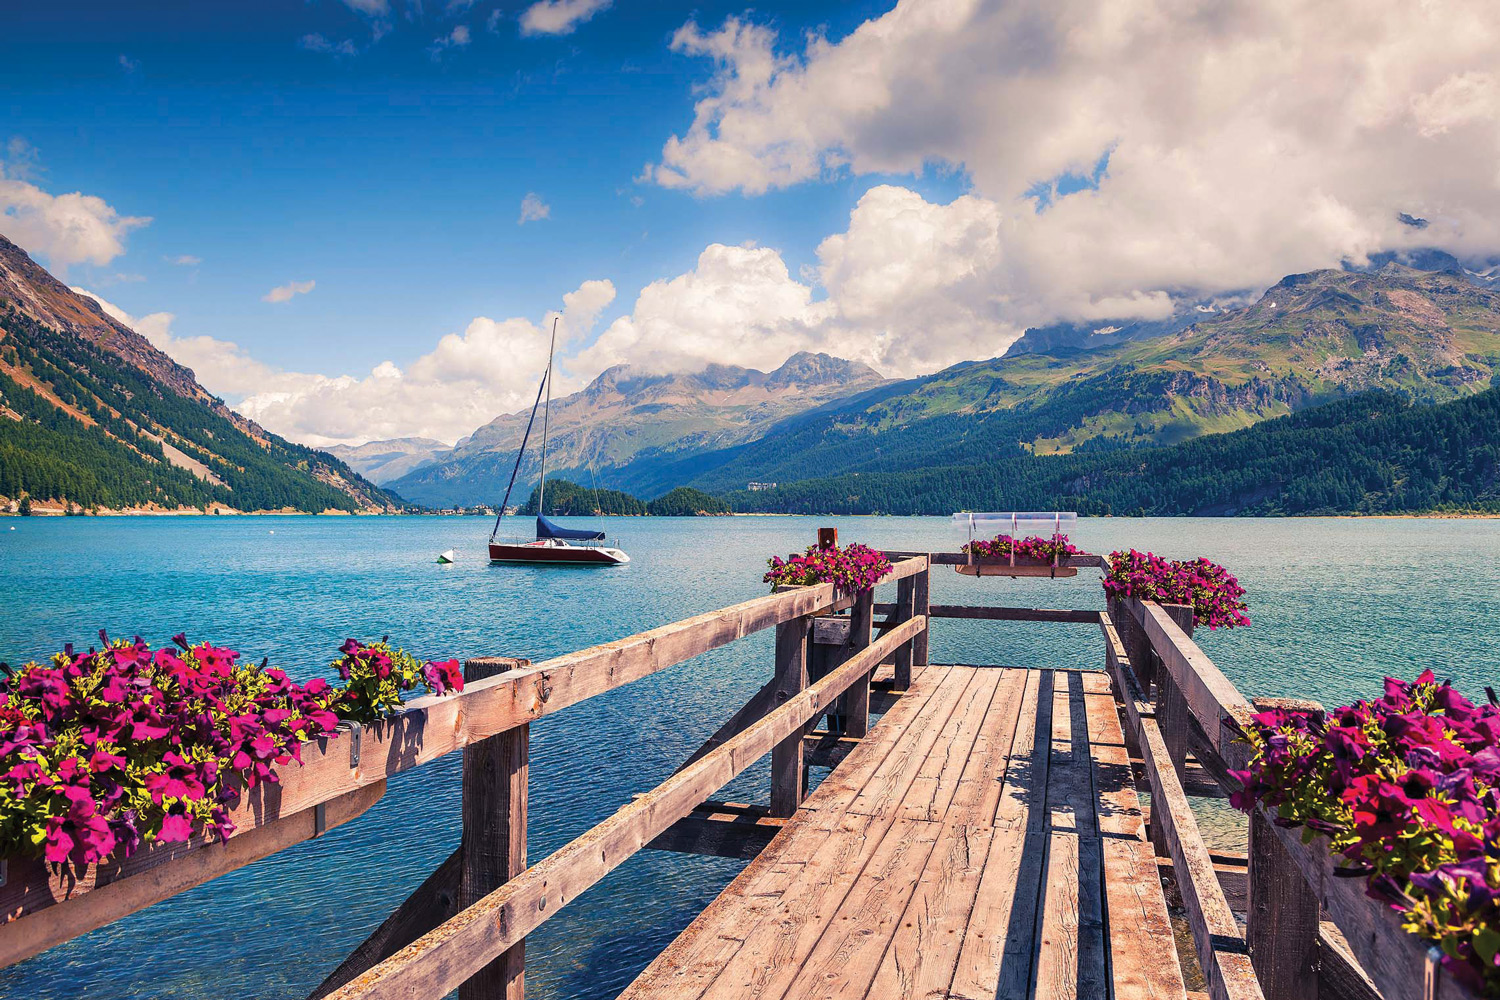 Avanti Destinations packages Switzerland to include off-the-beaten path destinations.